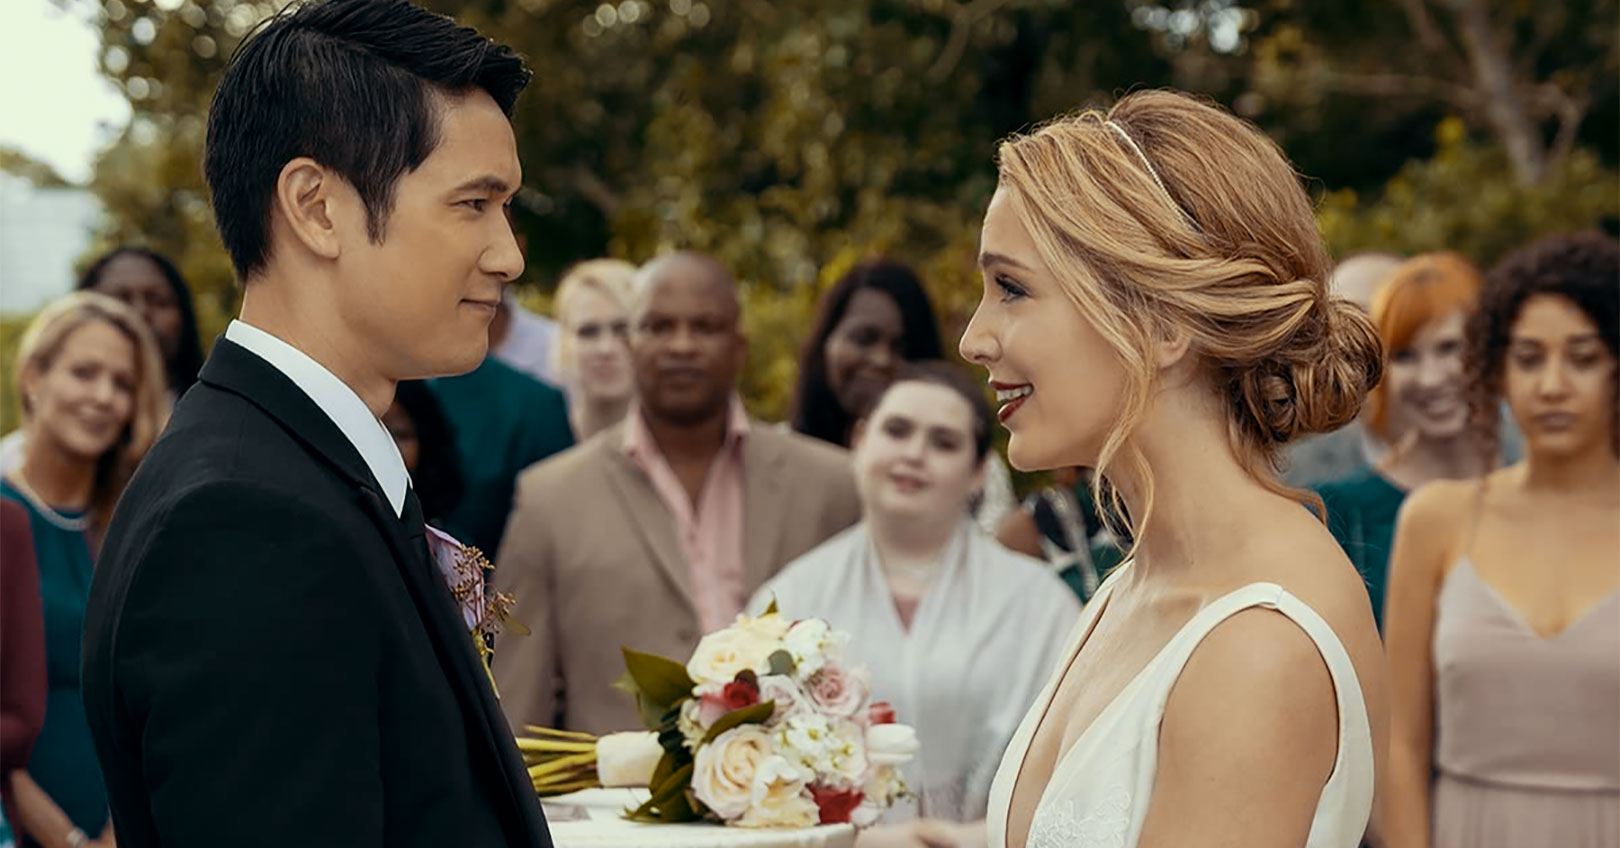 All My Life - Harry Shum Jr. and Jessica Rothe